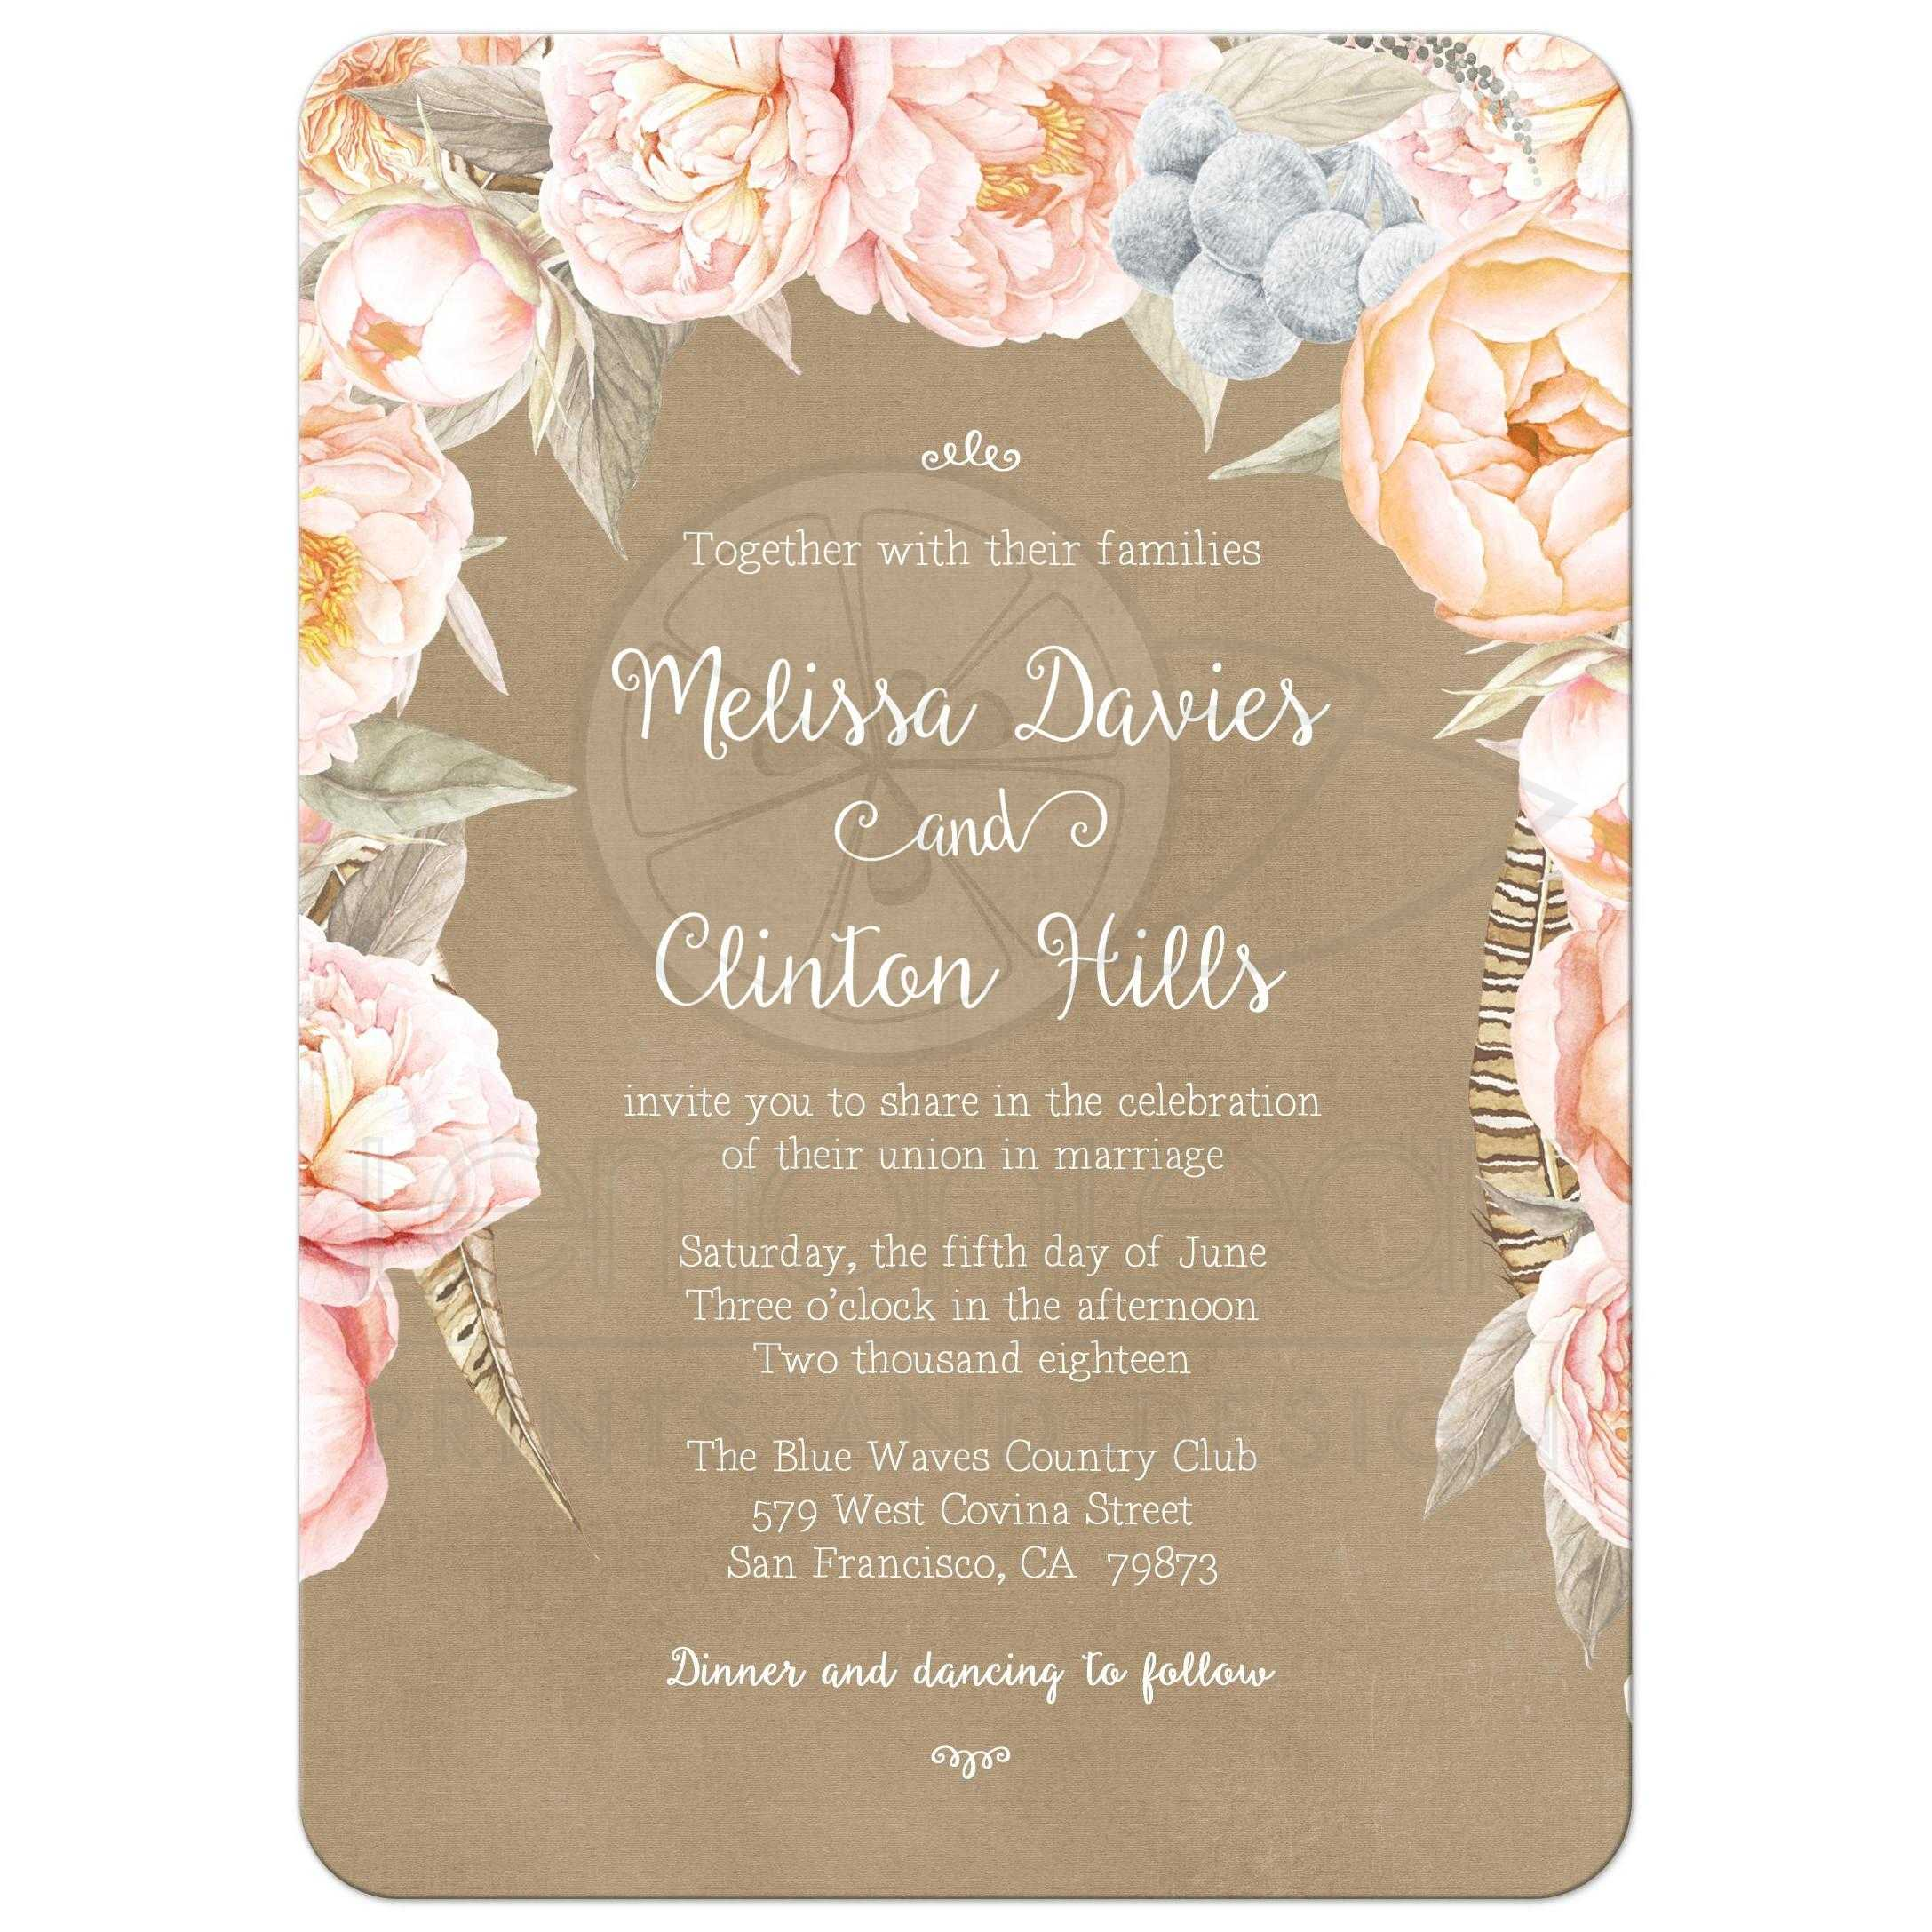 Pink Vintage Floral Peony Border Wedding Invitation Kraft